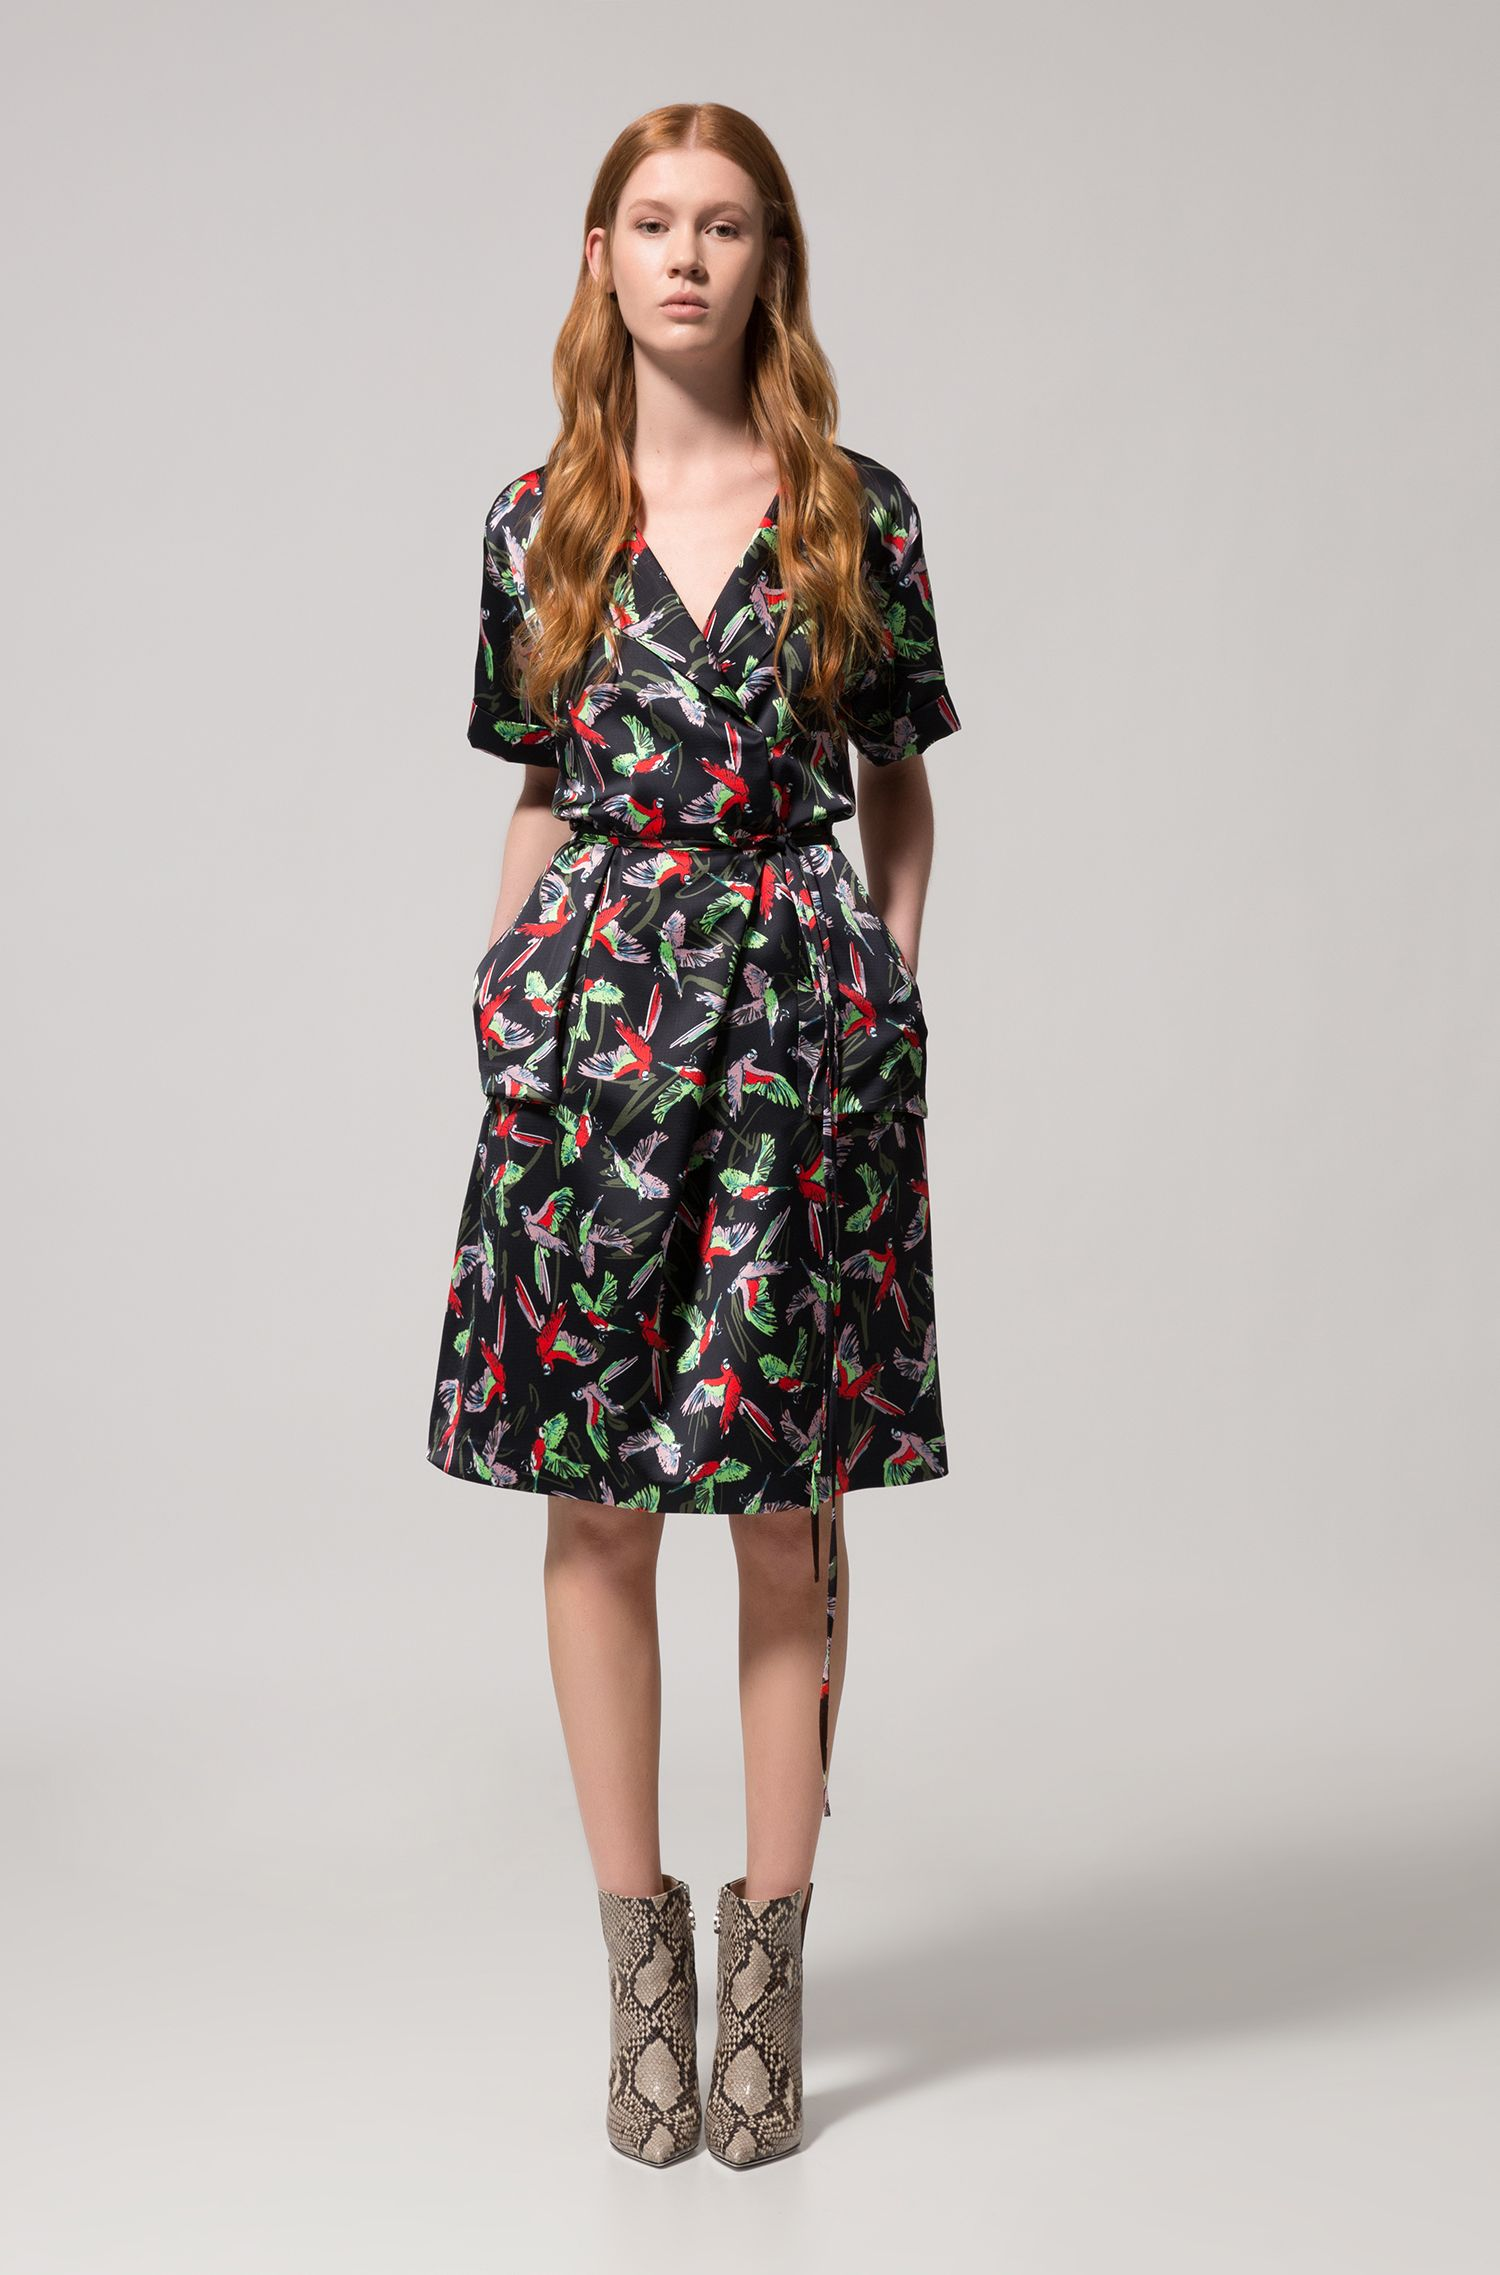 Kimono-inspired wrap dress with bird print, Patterned